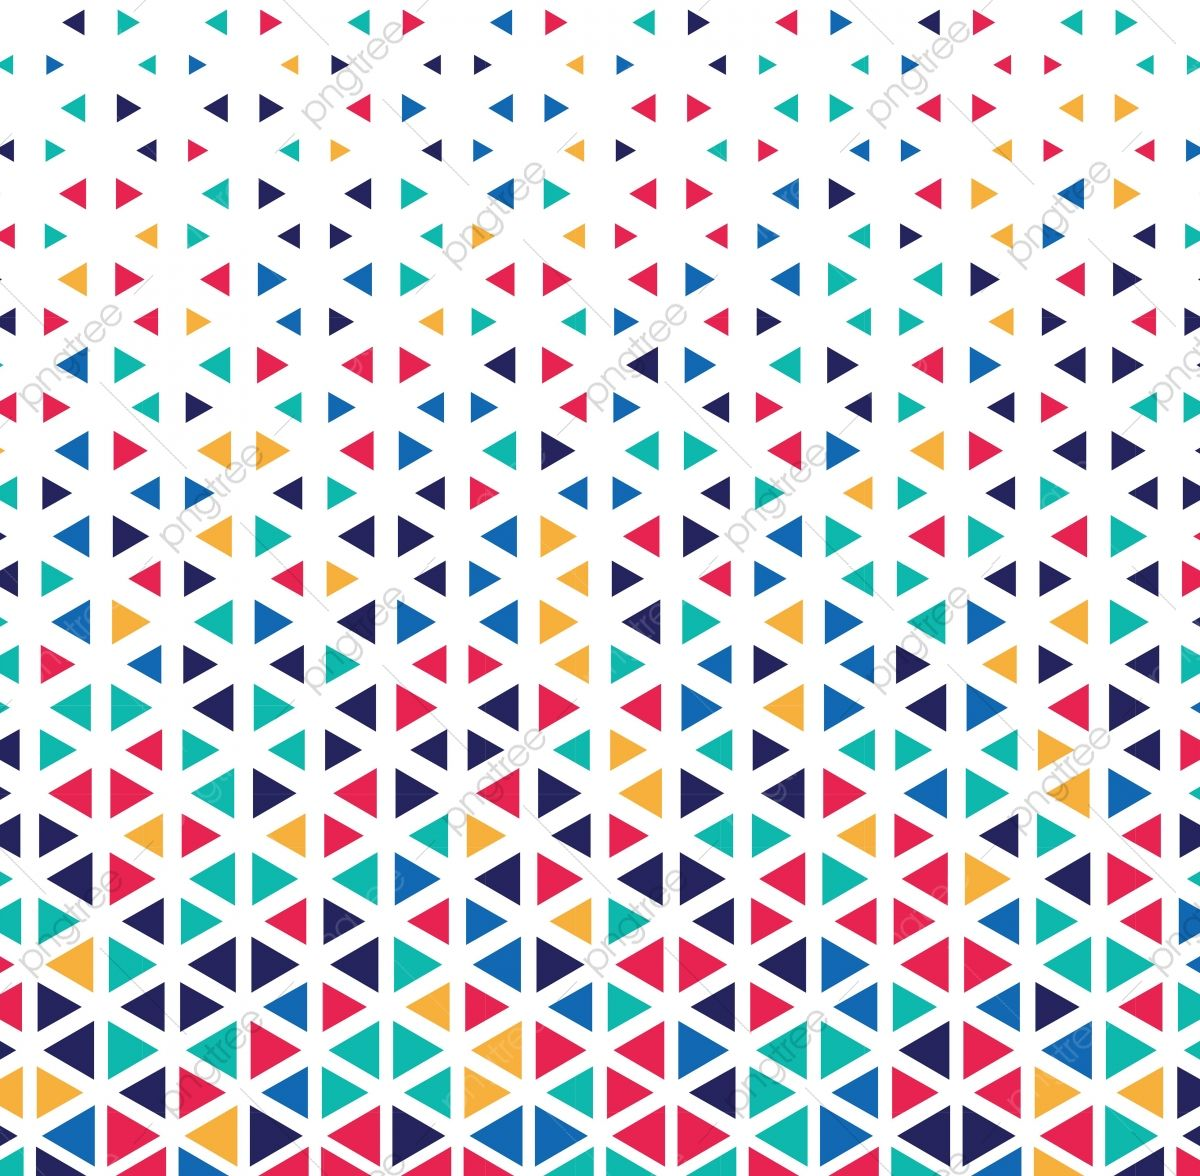 Abstract Colorful Geometric Pattern Background Vector Pattern Clipart Abstract Background Png And Vector With Transparent Background For Free Download Geometric Pattern Background Vector Background Pattern Background Patterns